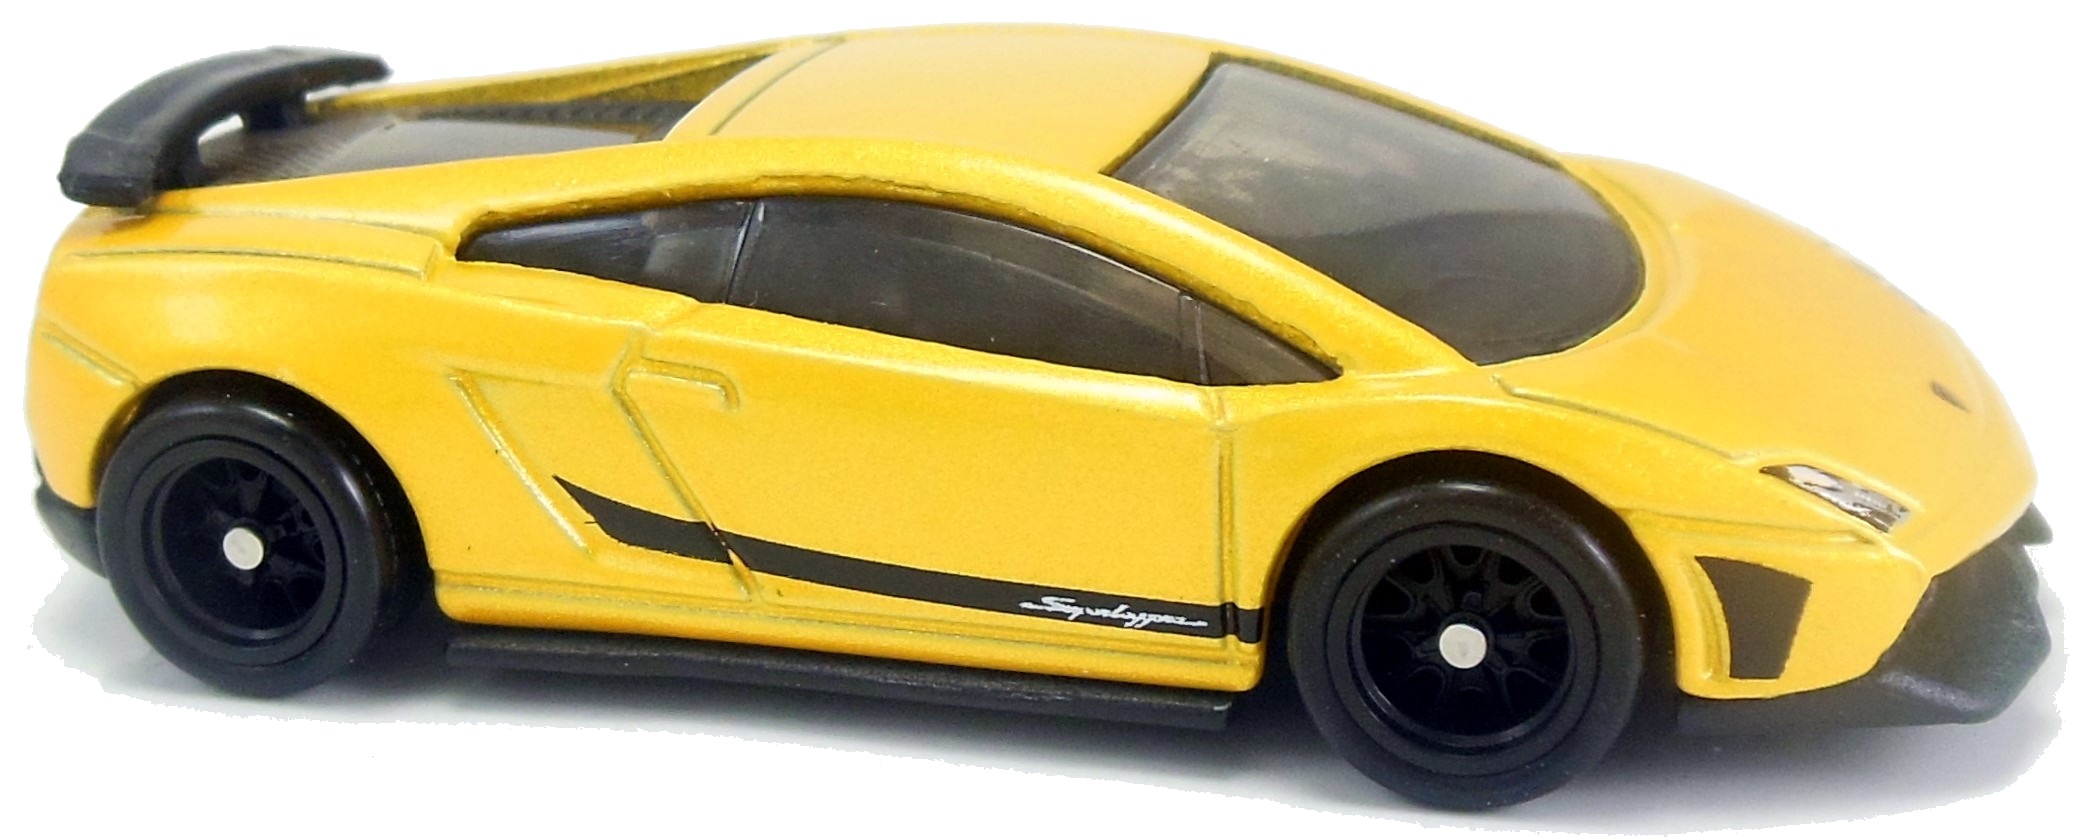 Fast & Furious Premium Assortment | Hot Wheels Newsletter